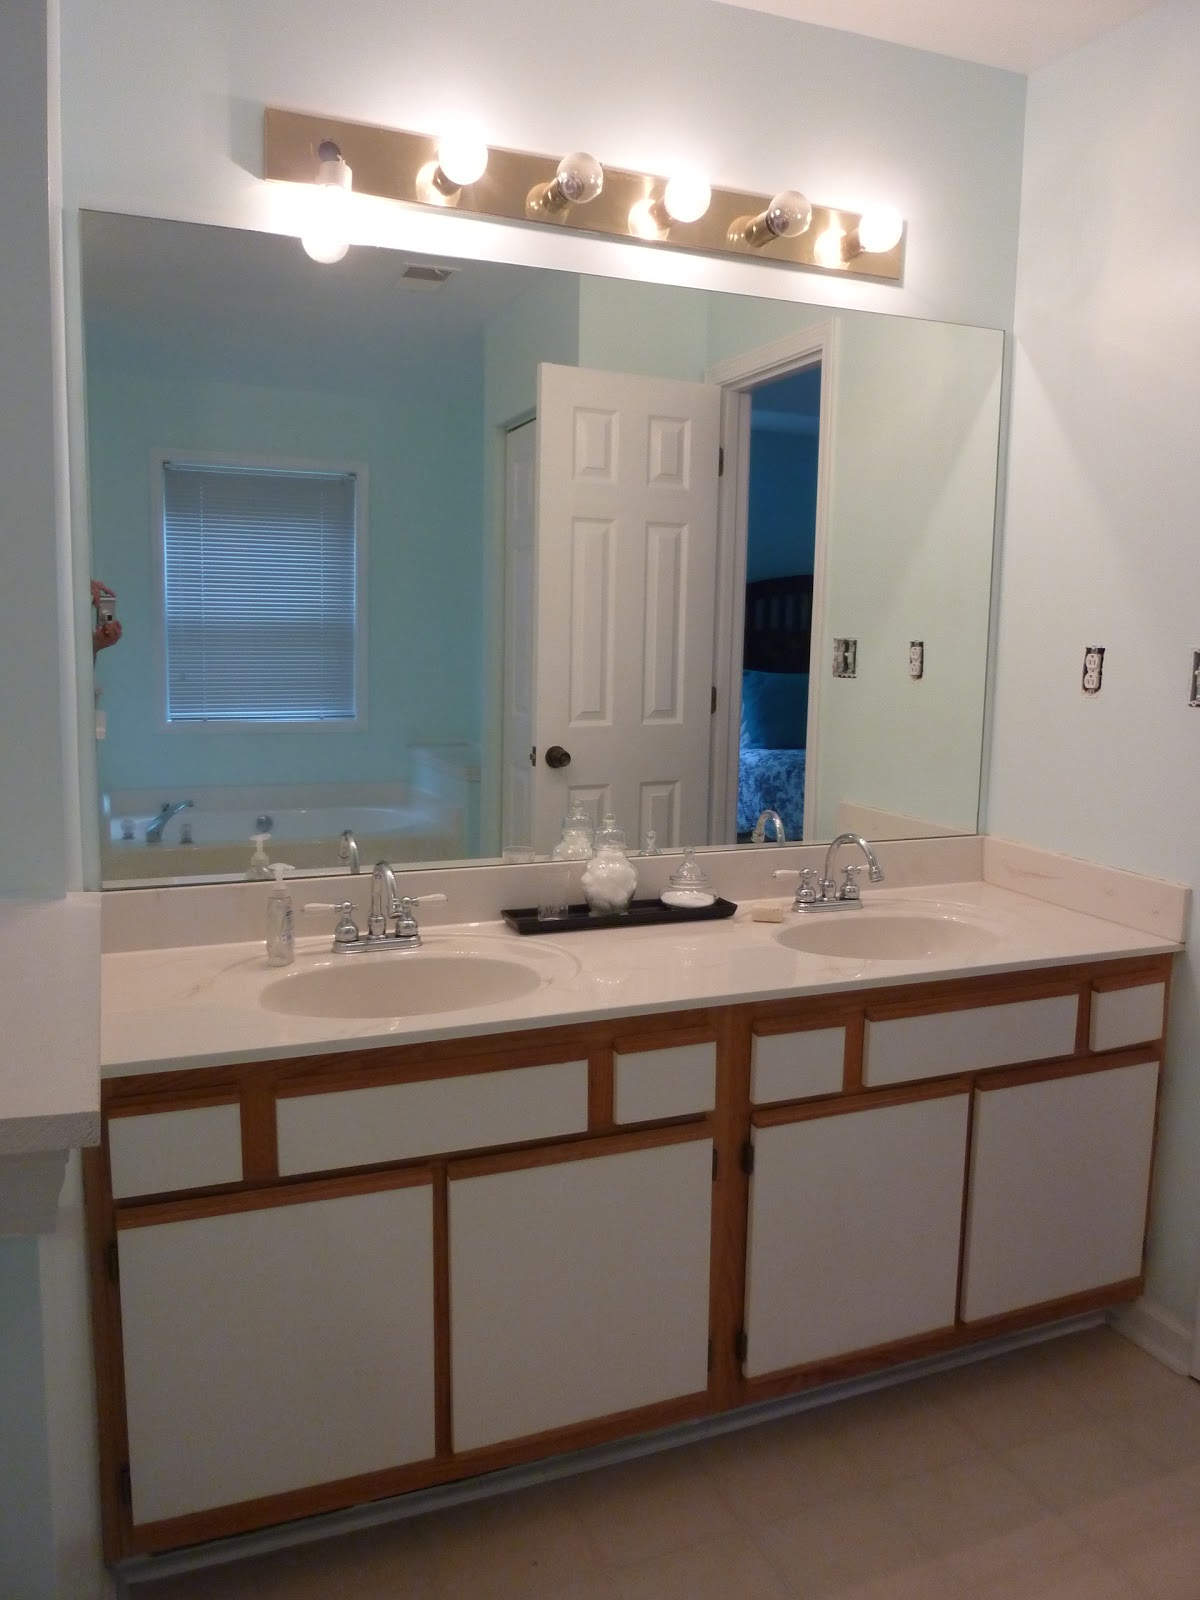 painting a bathroom cabinet. Best Paint For Bathroom Cabinets Nice Ideas   kristybaby com